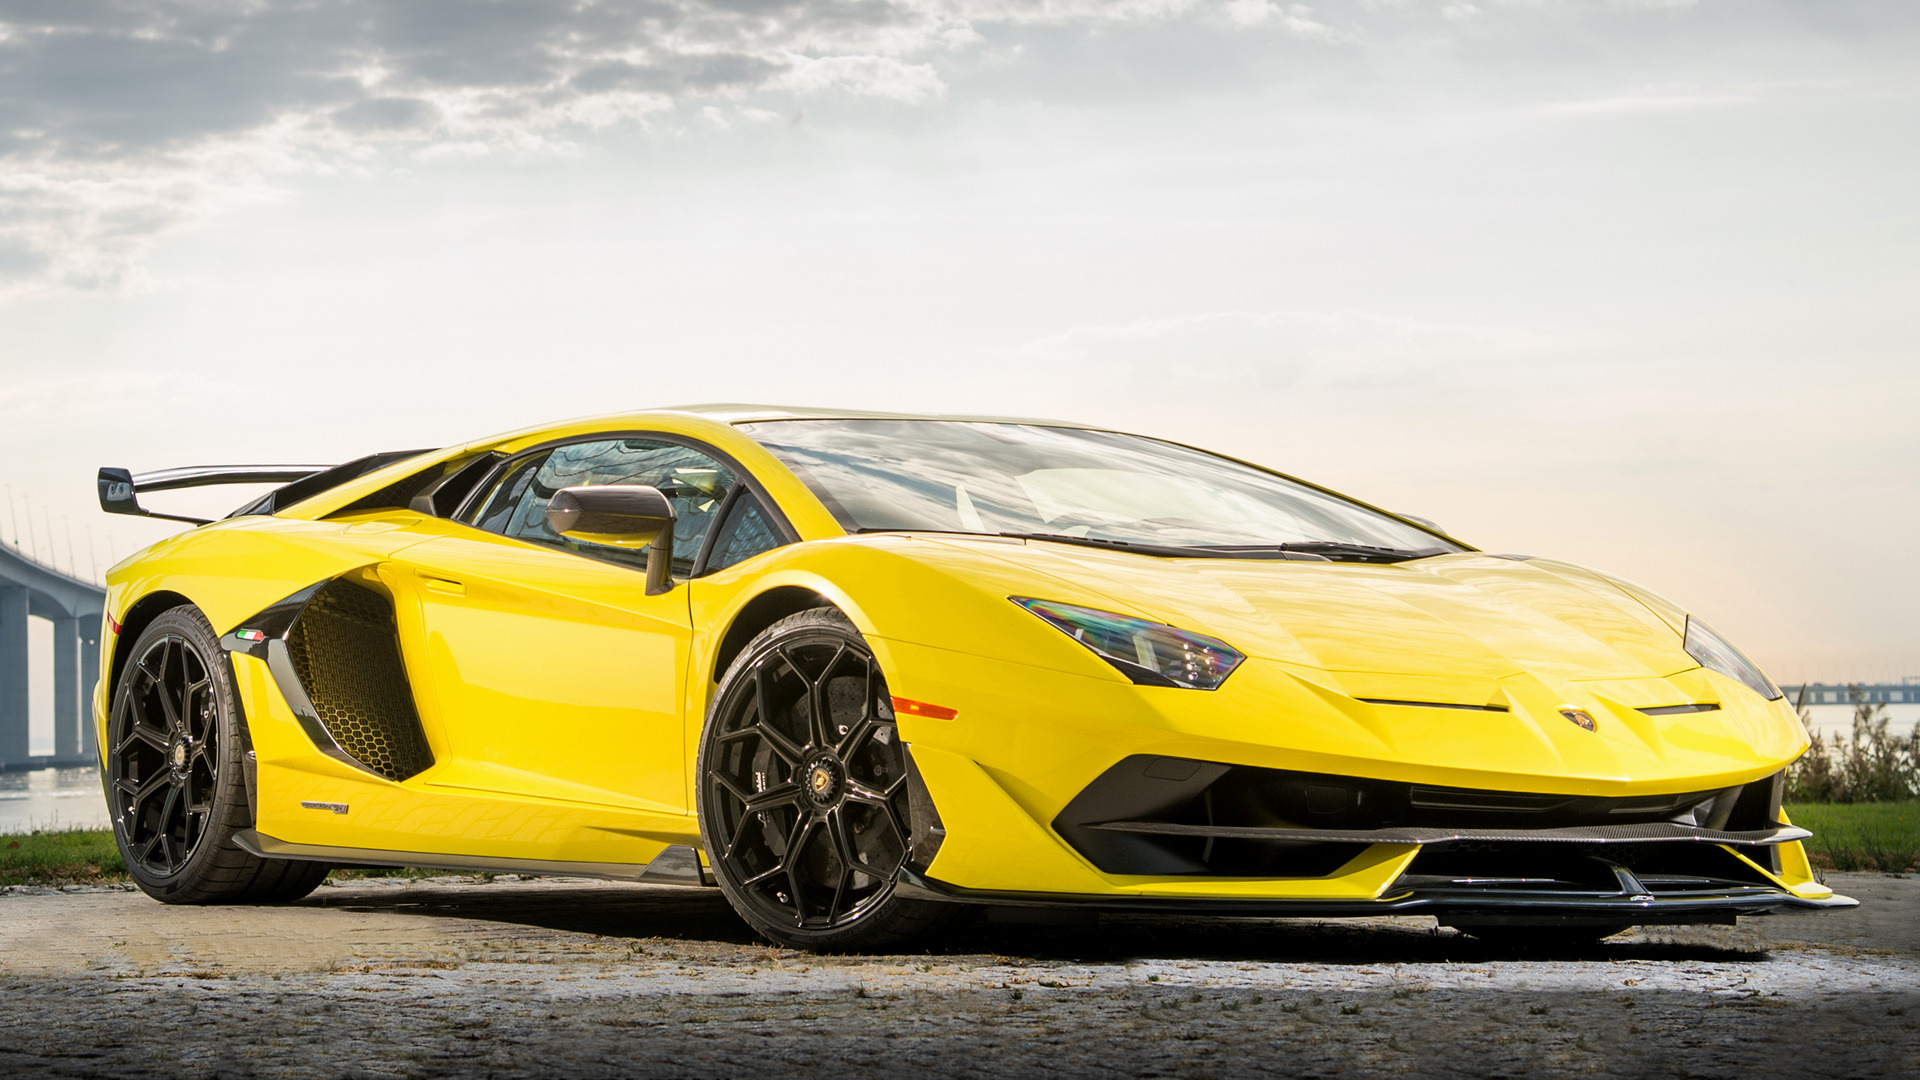 2019 Lamborghini Aventador Svj Hd Wallpaper Background Image